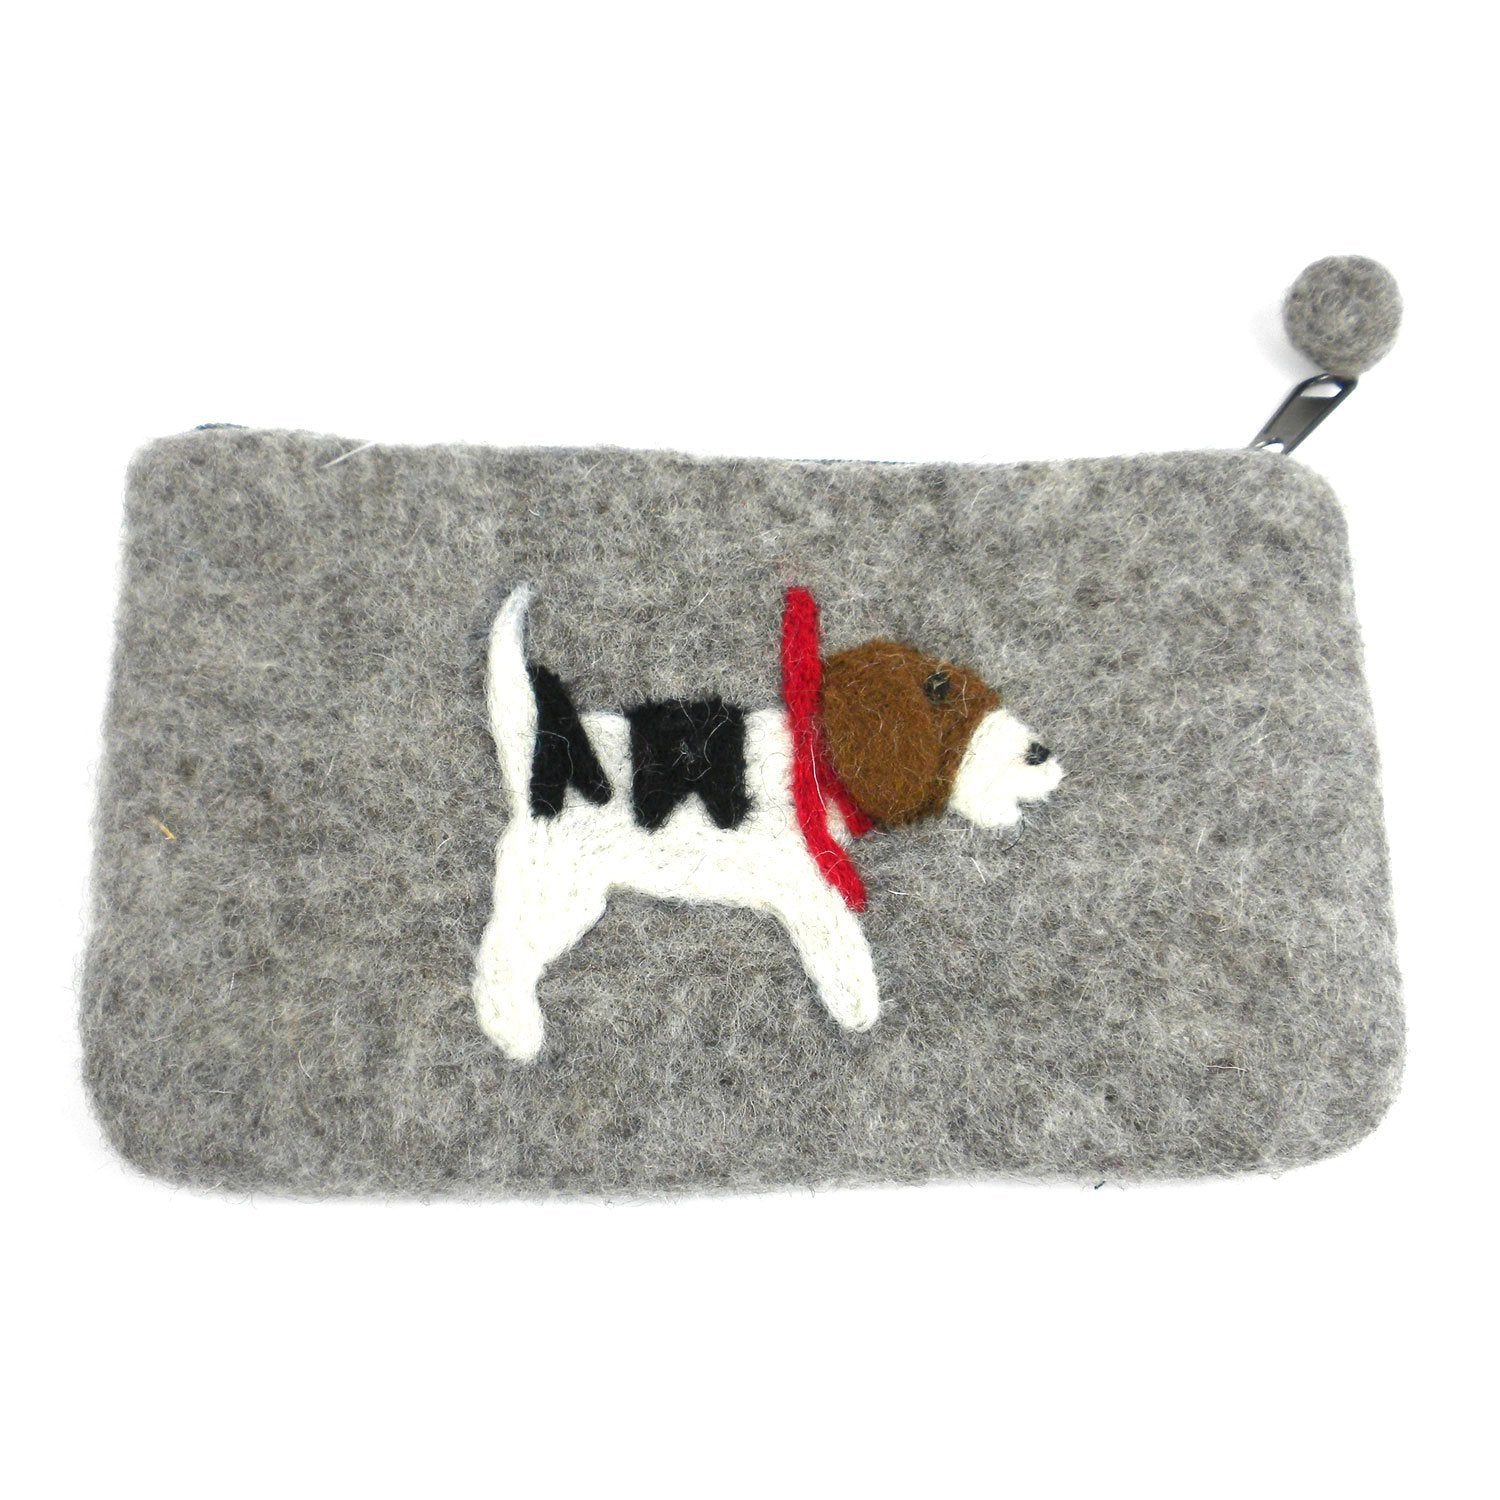 Friendly Dog Clutch - Hand felted (IS)